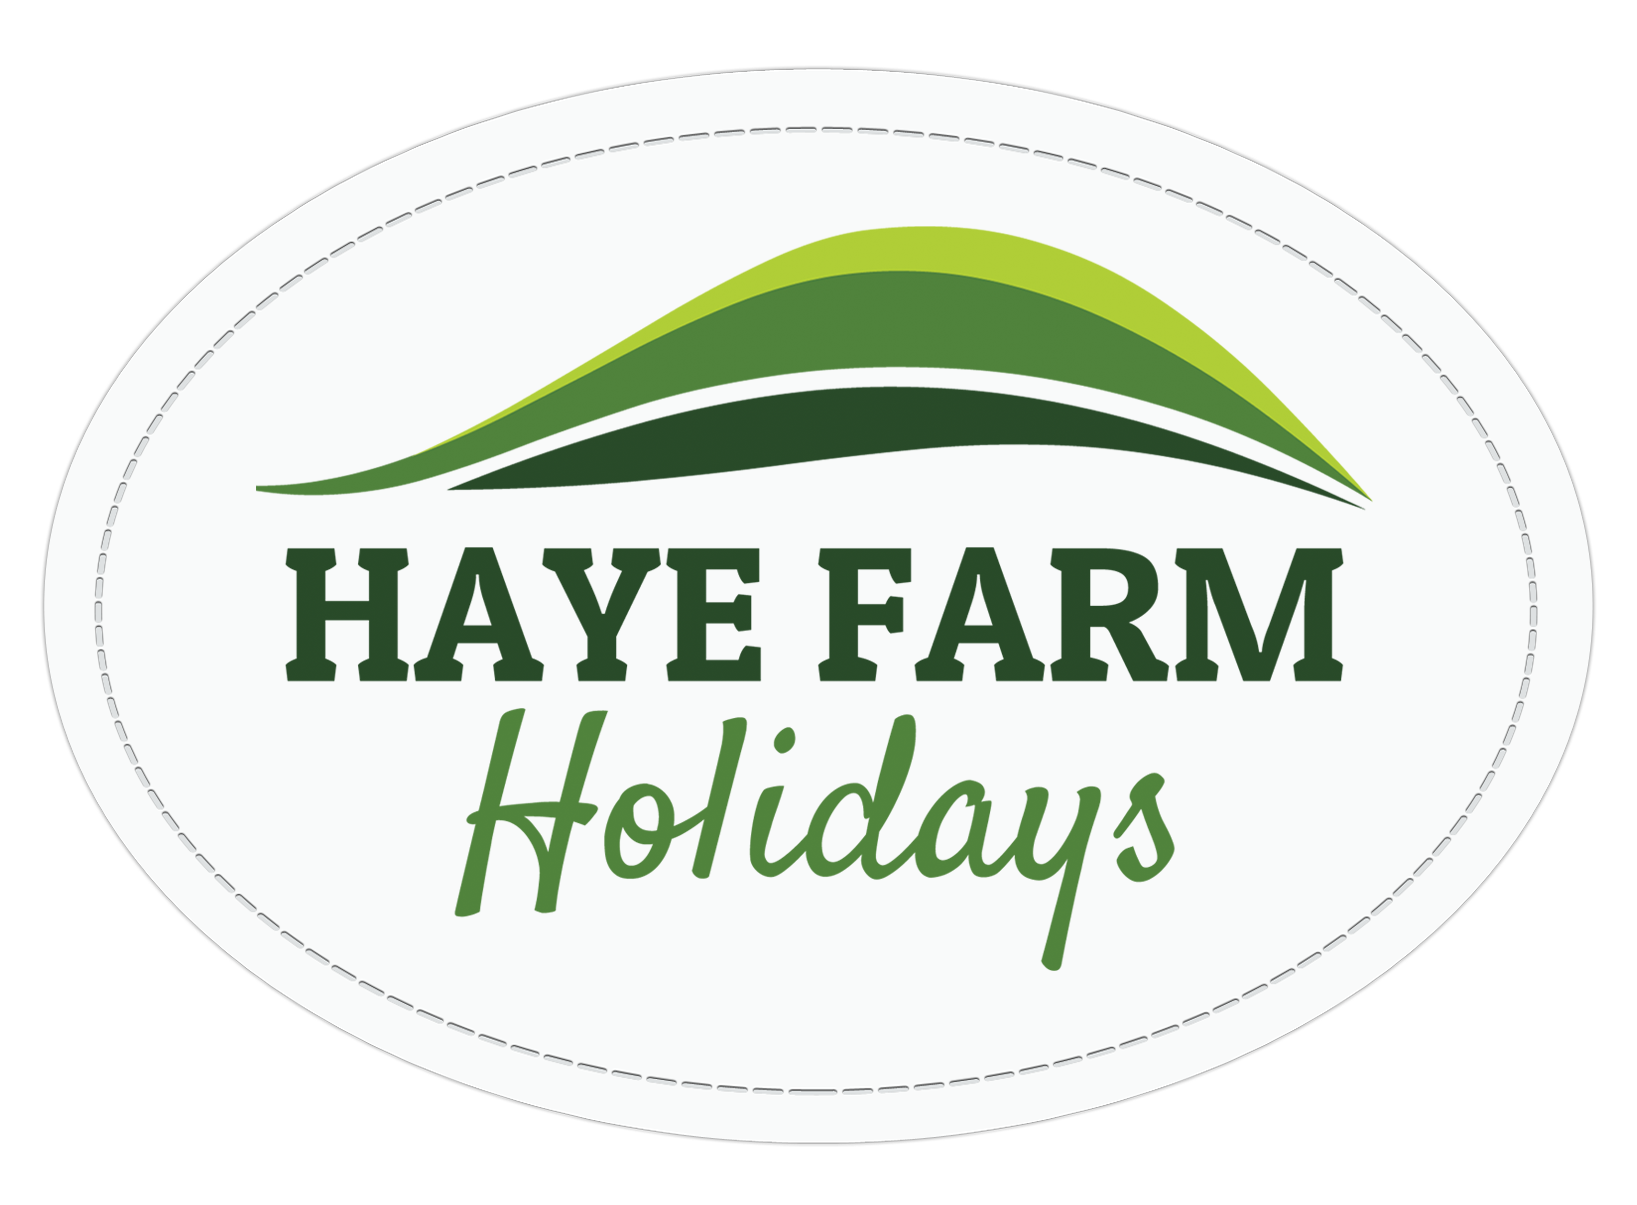 Haye Farm Holidays